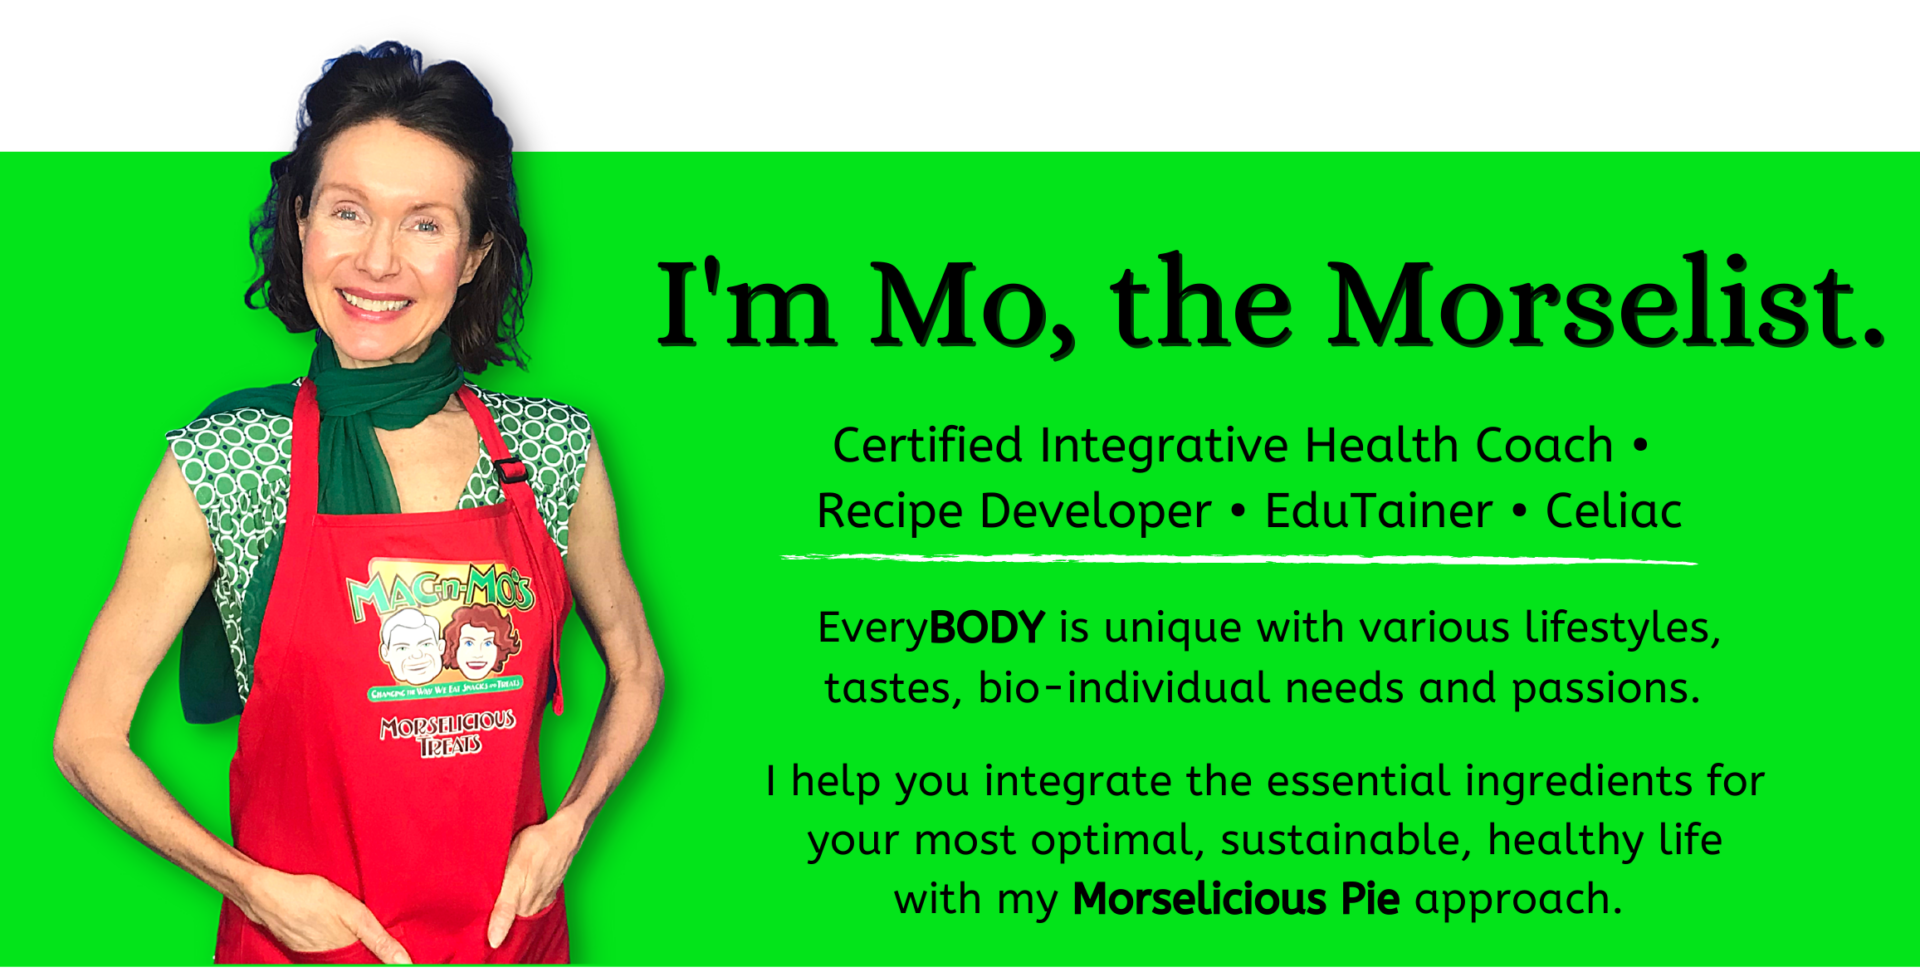 Photo of Mo, the Morselist in red apron. Text reads: I'm Mo, the Morselist. Certified Integrative Health Coach • Recipe Developer • EduTainer • Celiac, EveryBODY is unique with various lifestyles, tastes, bio-individual needs and passions. I help you integrate the essential ingredients for your most optimal, sustainable, healthy life with my Morselicious Pie approach.